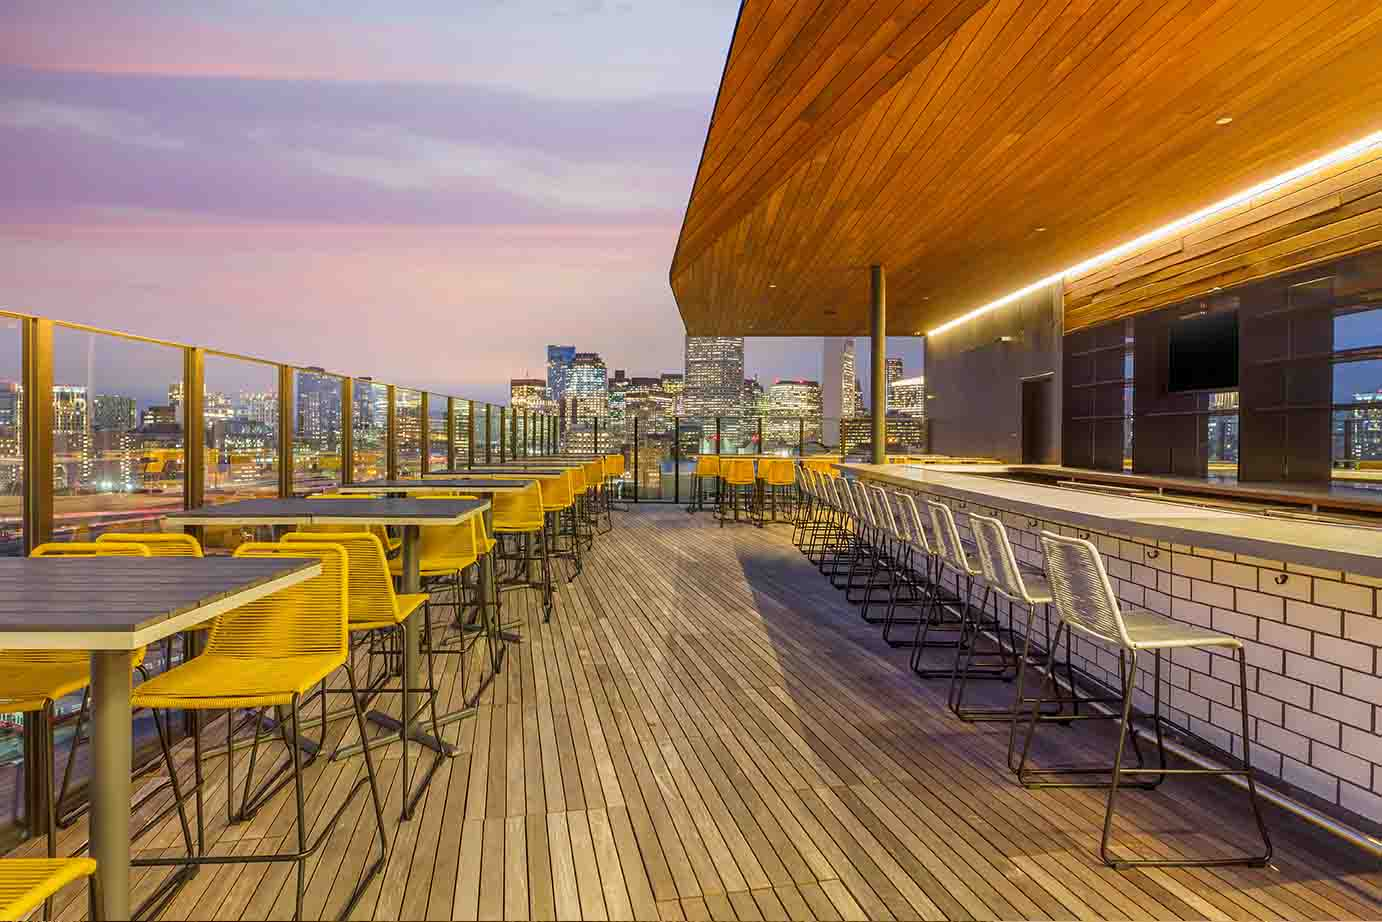 Chic Hotel Rooftop Bar in the City